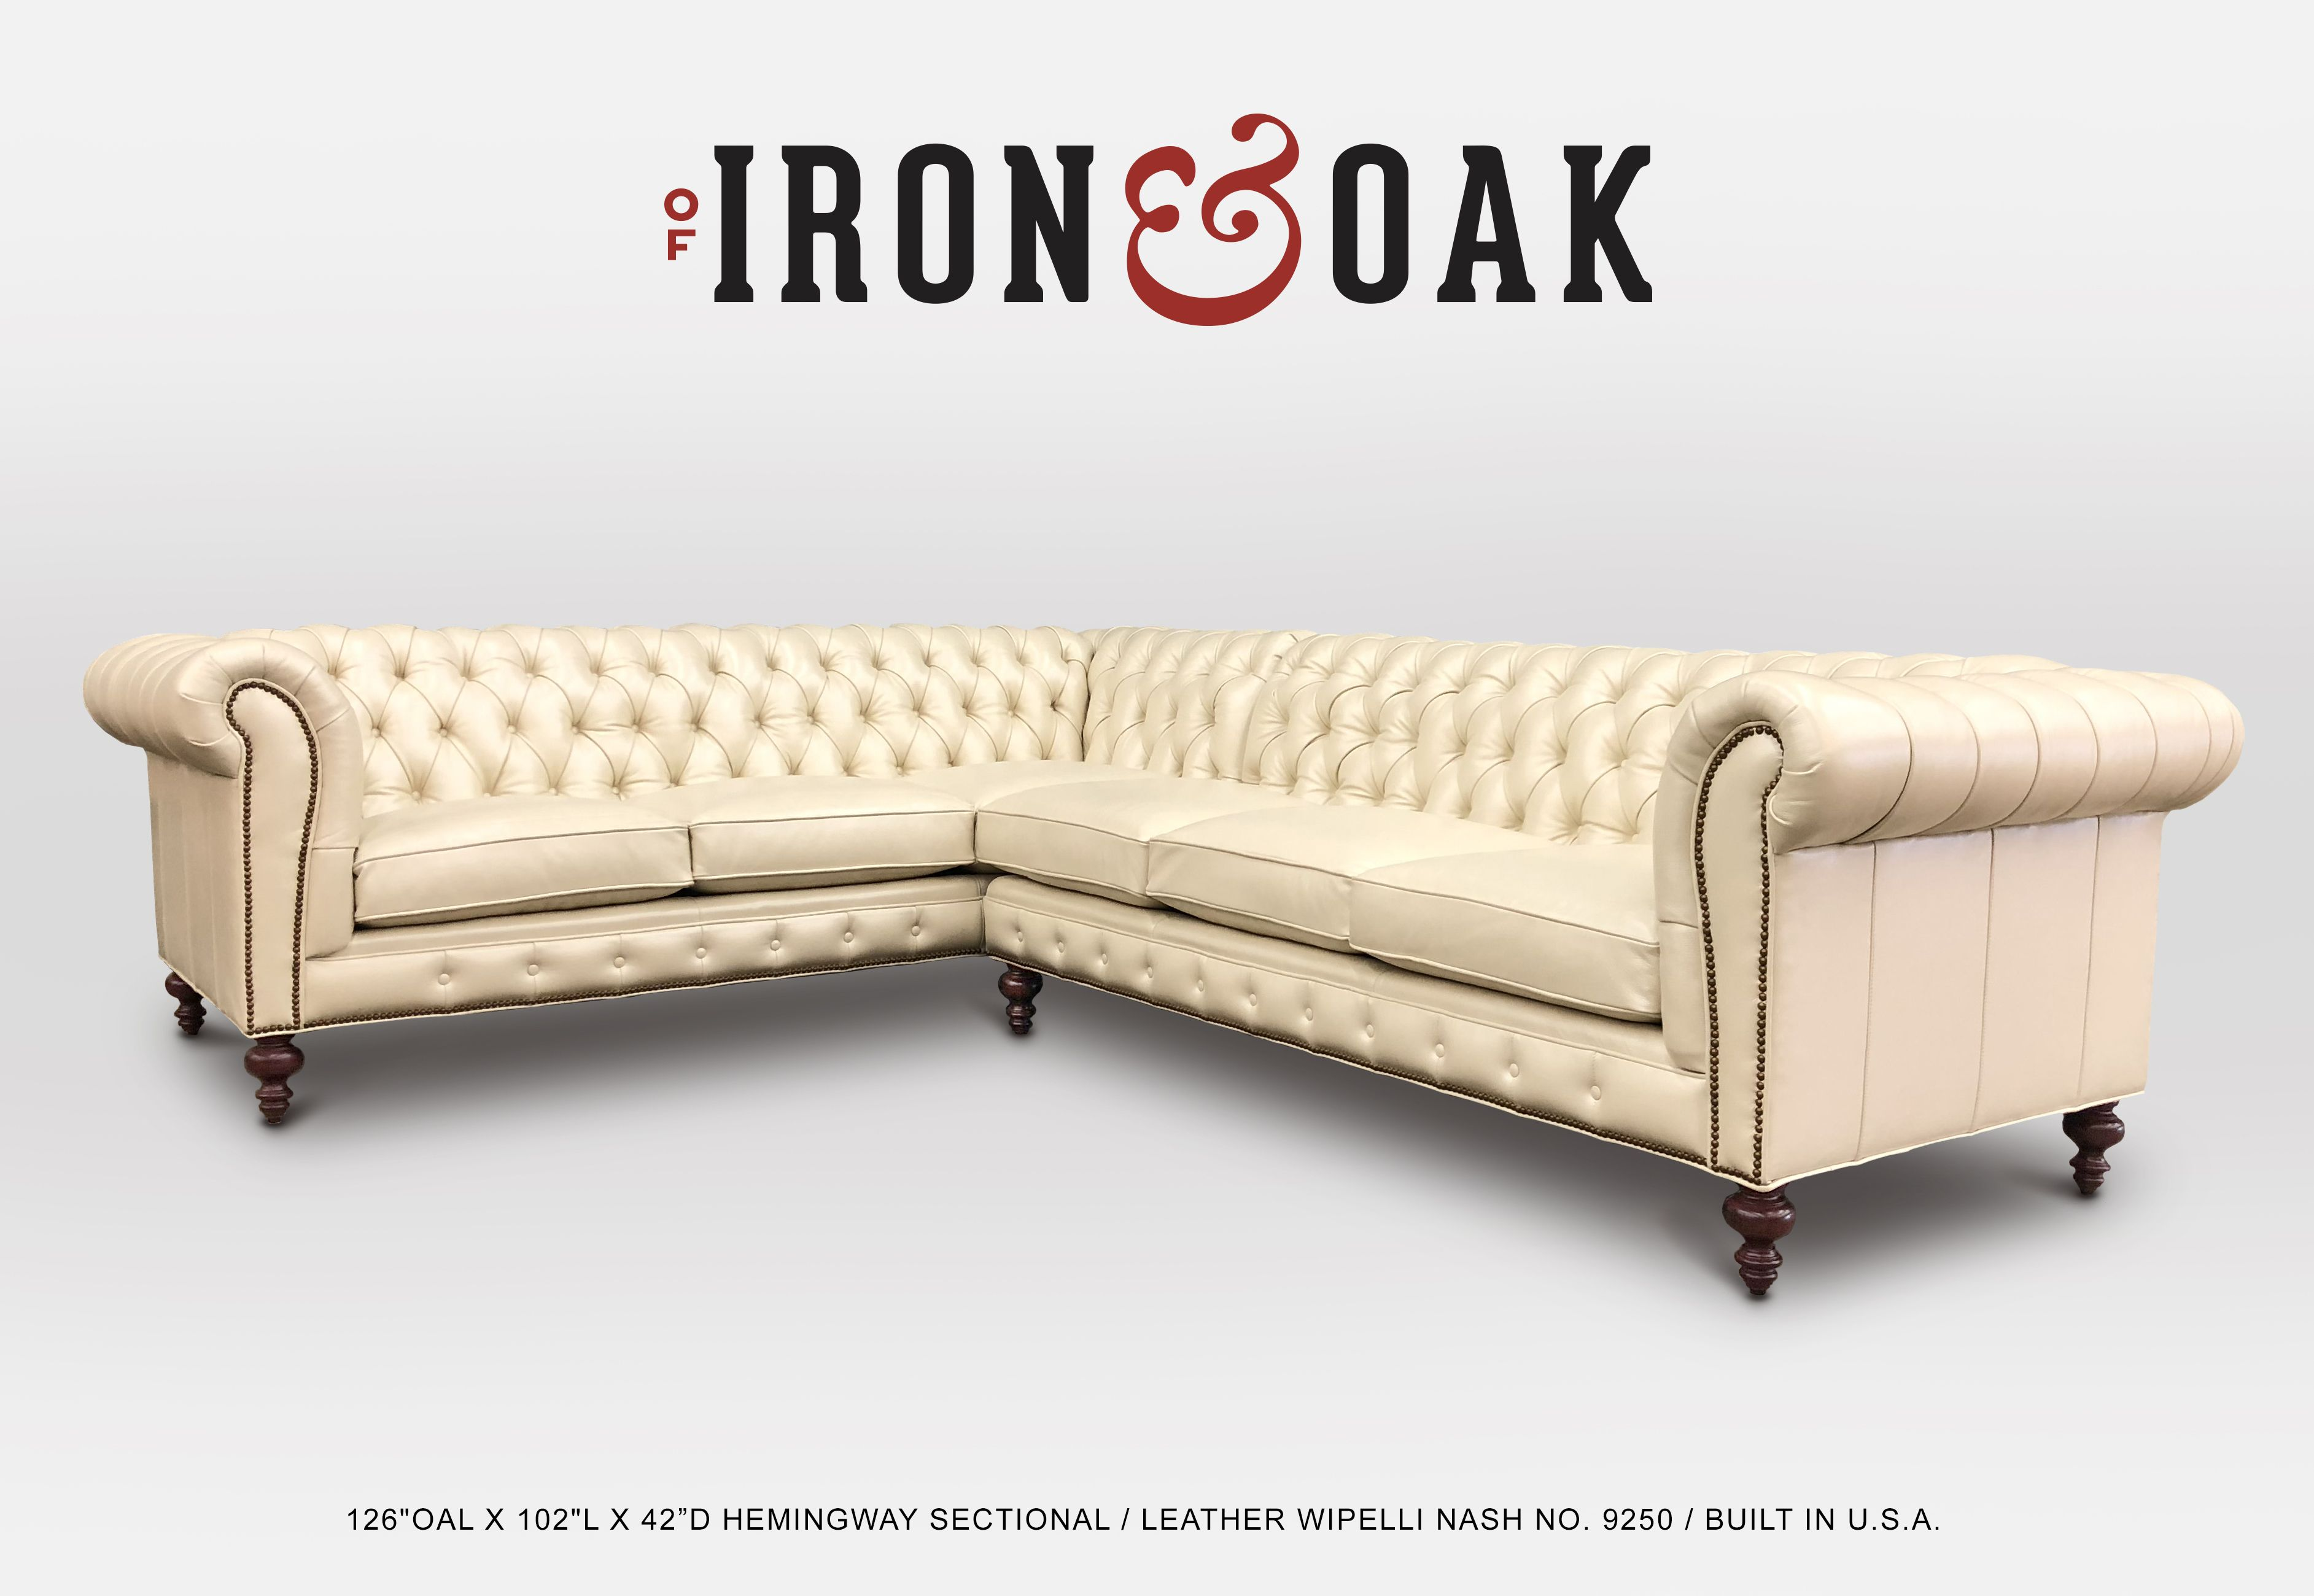 Chesterfield Sectional Sofa Of Iron And Oak S Exclusive Hemingway Chesterfield Sectional Sofa